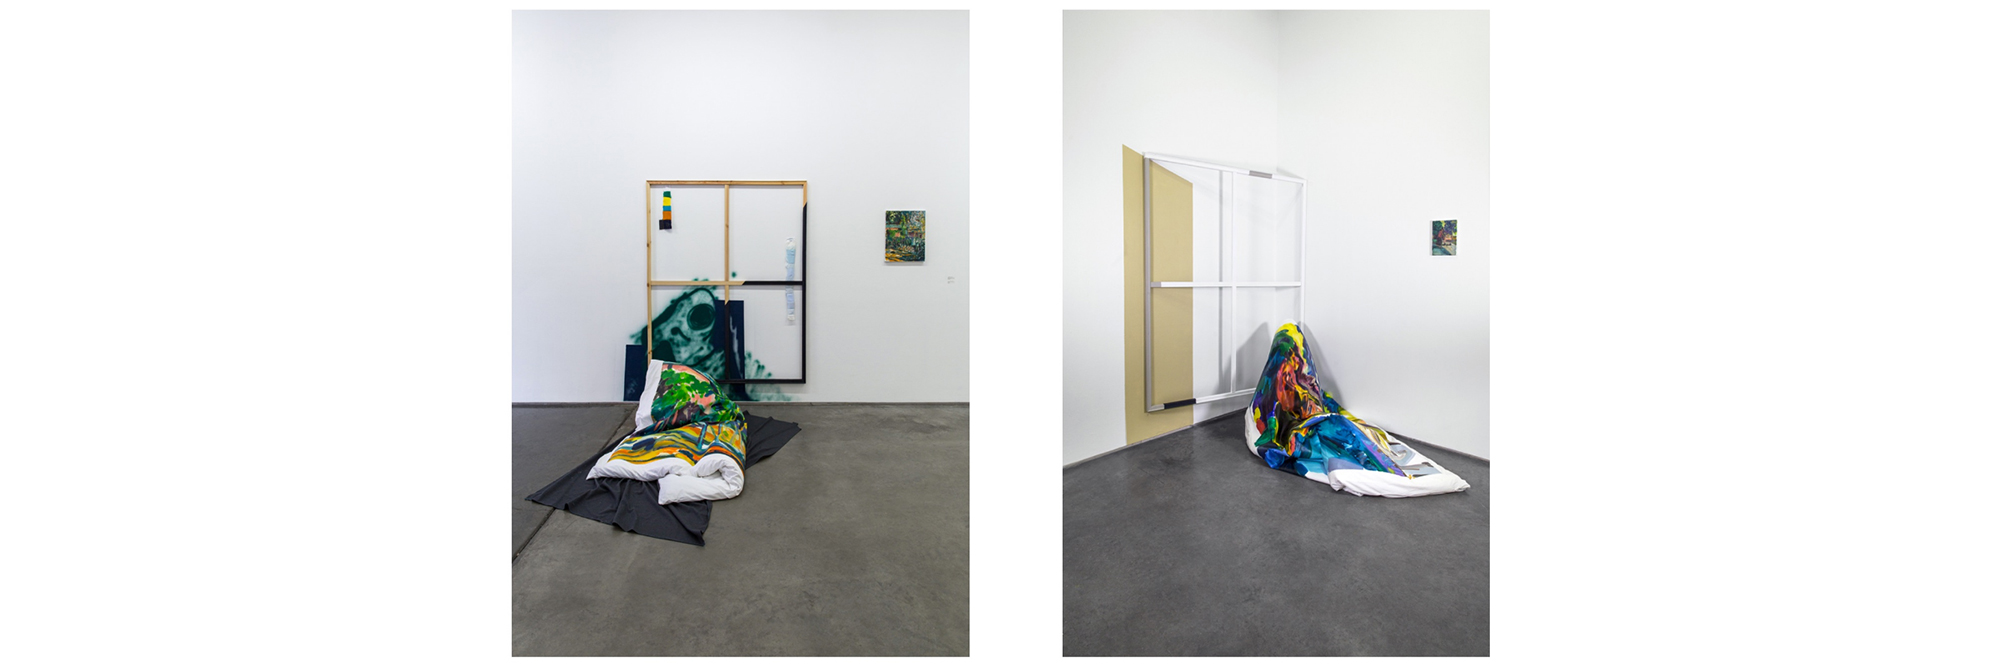 HYEIN LEE AT 18TH STREET SANTA MONICA   | Hyein Lee | Apr 2 — 29, 2018 |  press release